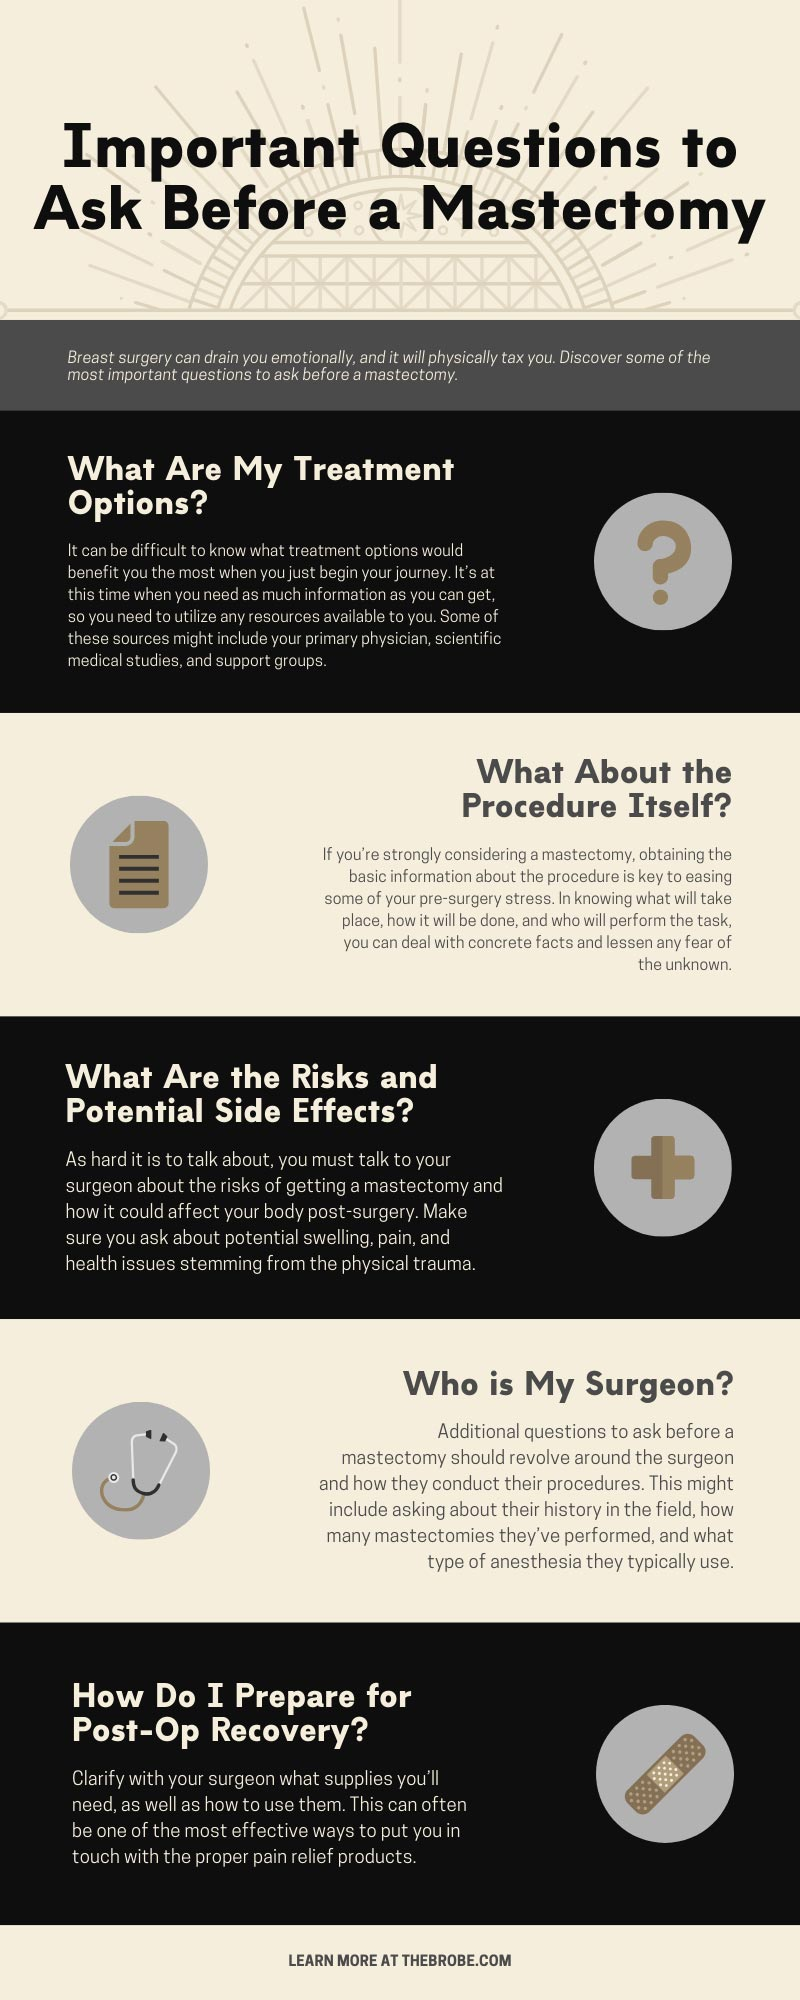 Important Questions to Ask Before a Mastectomy infographic